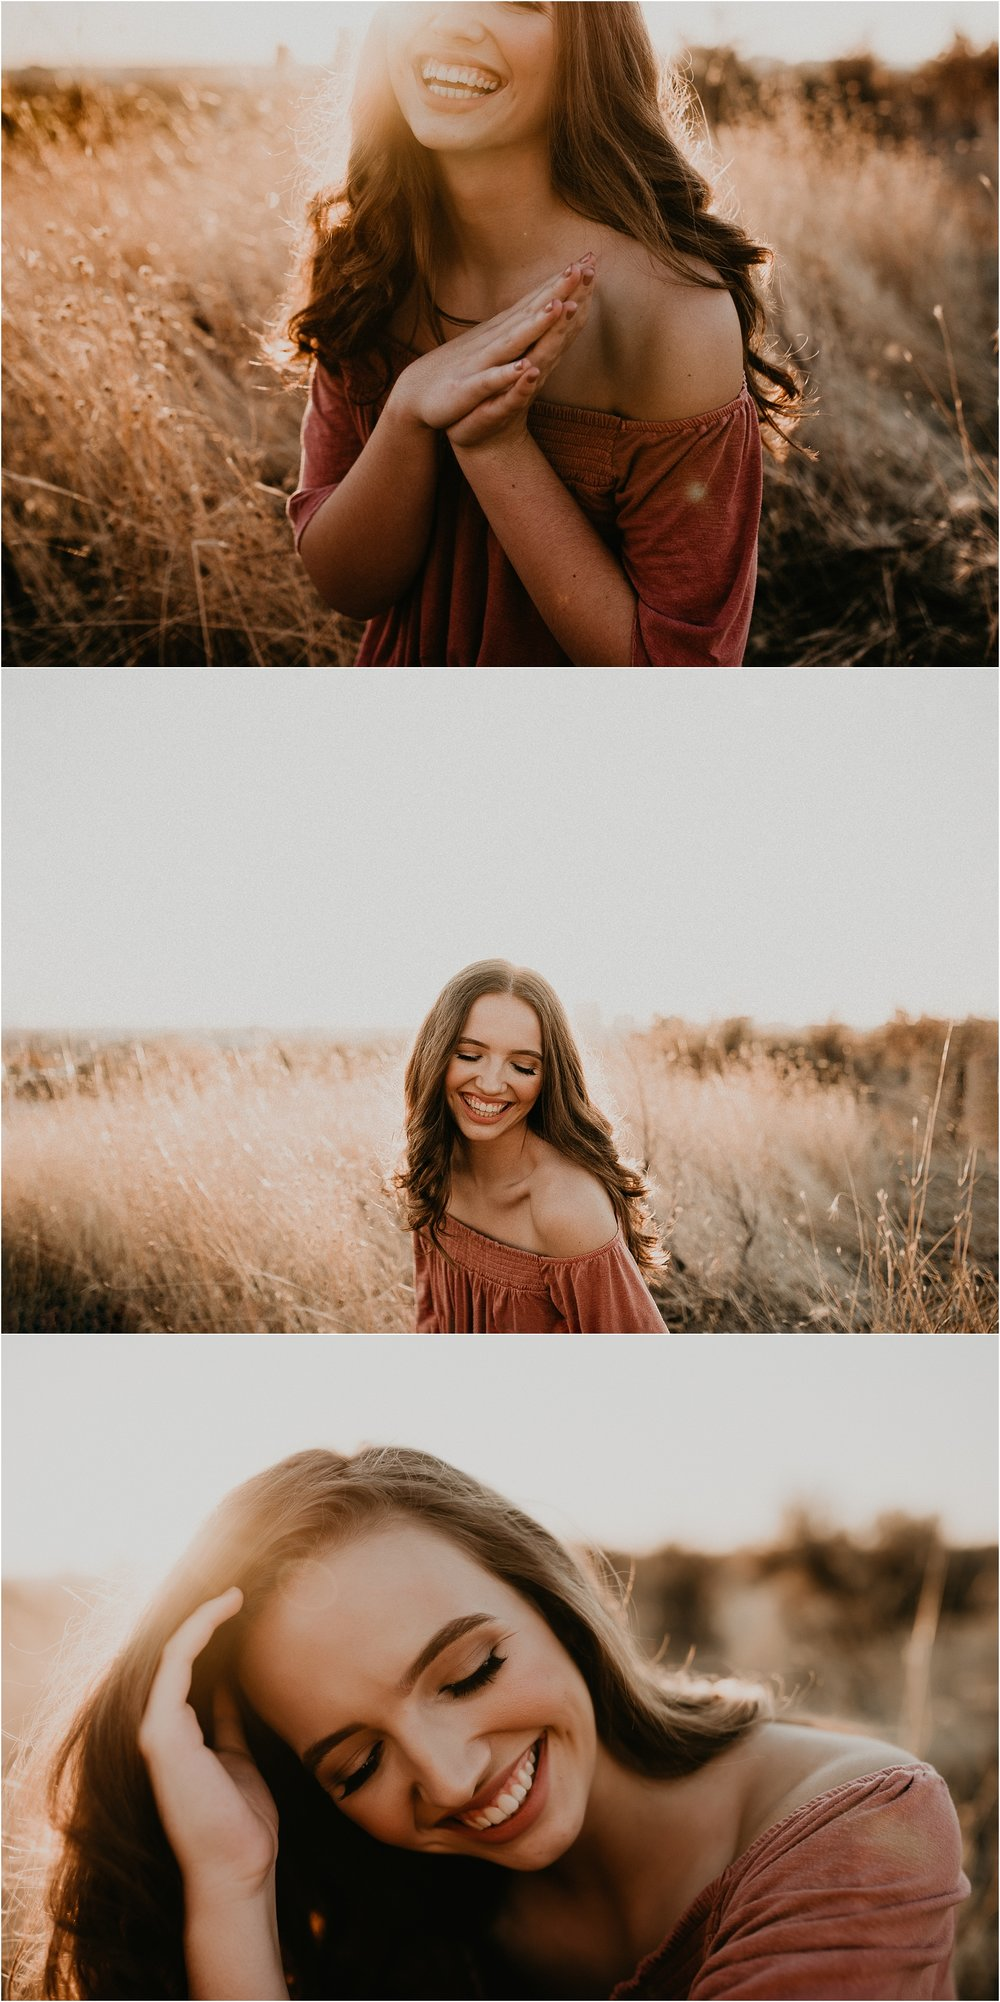 Boise Senior Photographer Makayla Madden Photography Downtown Boise Senior Pictures Boise Foothills Senior Outfit Locations Raw Real Natural Candid Moments Fall meridian senior photographer